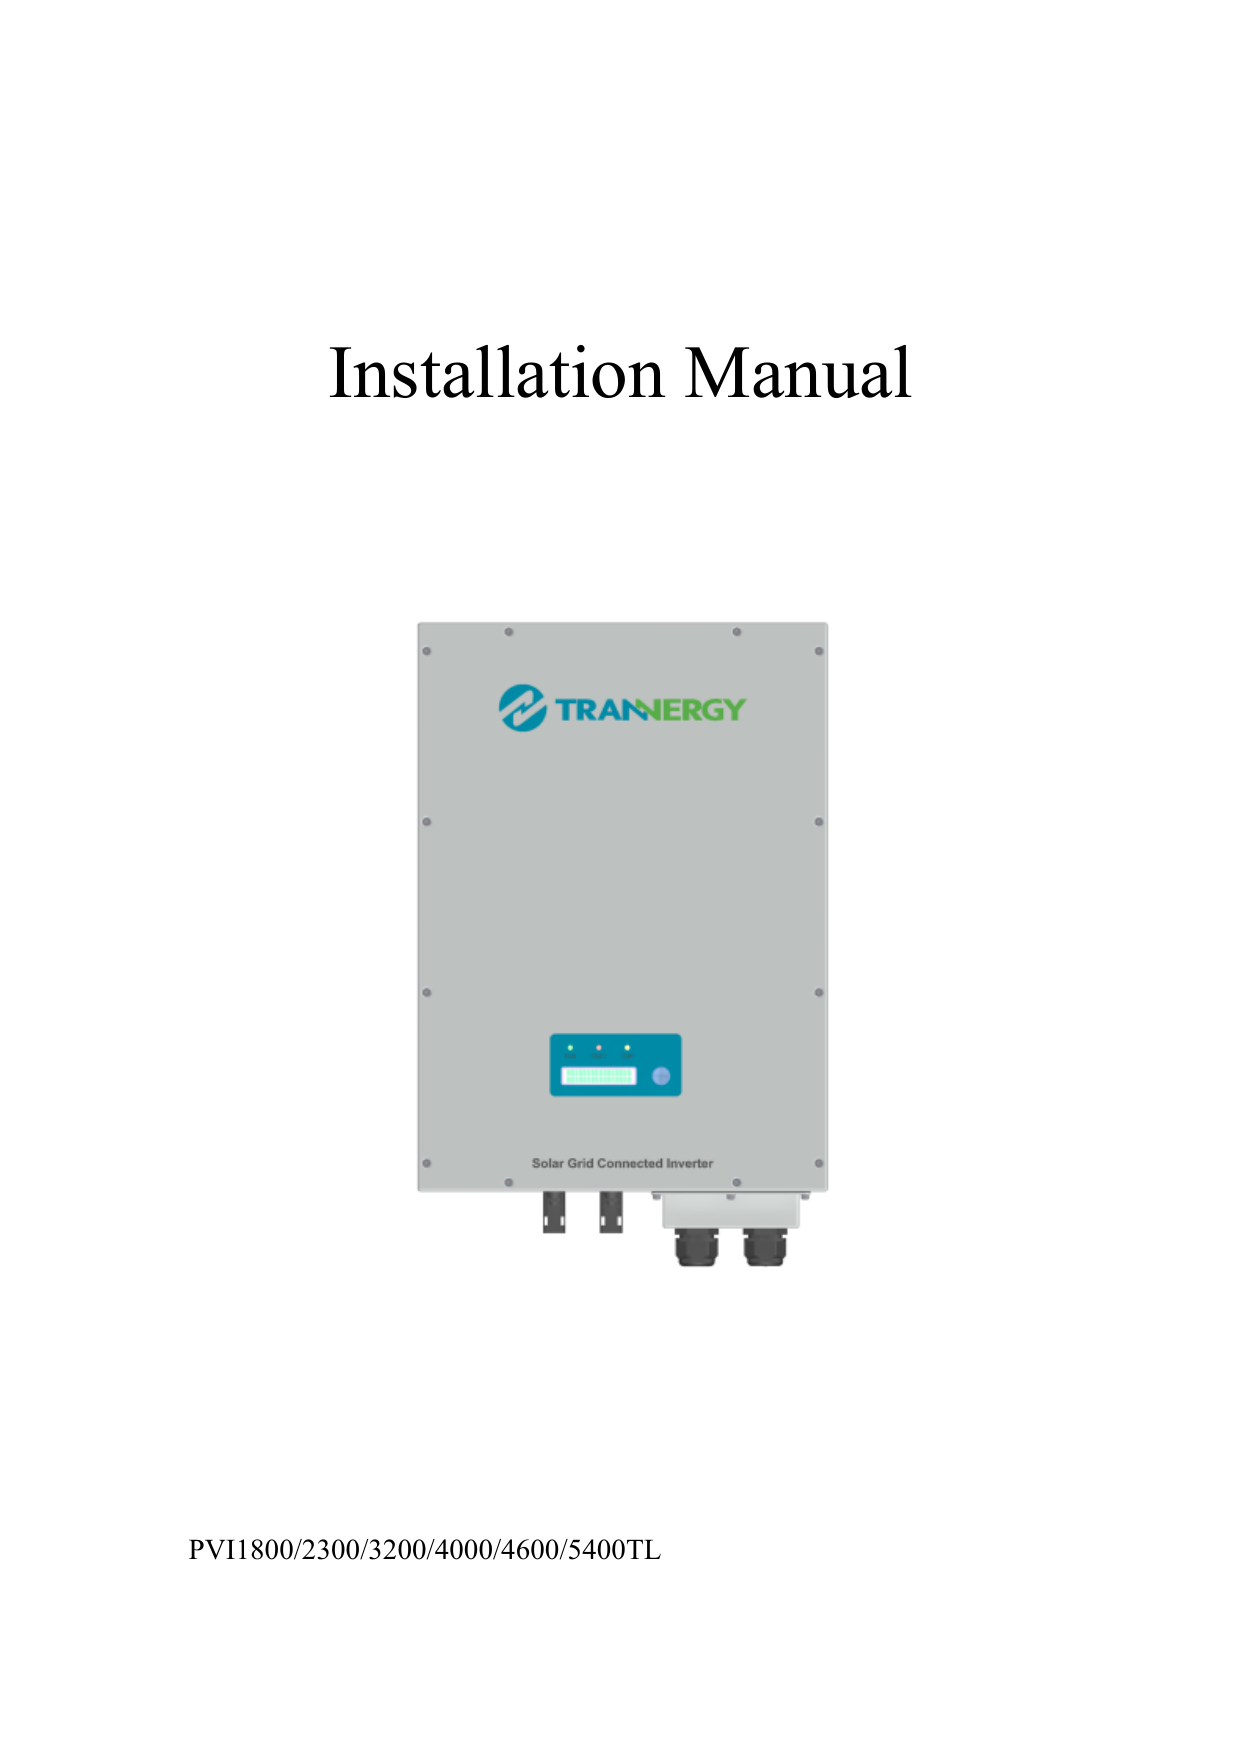 Trannergy User Manual